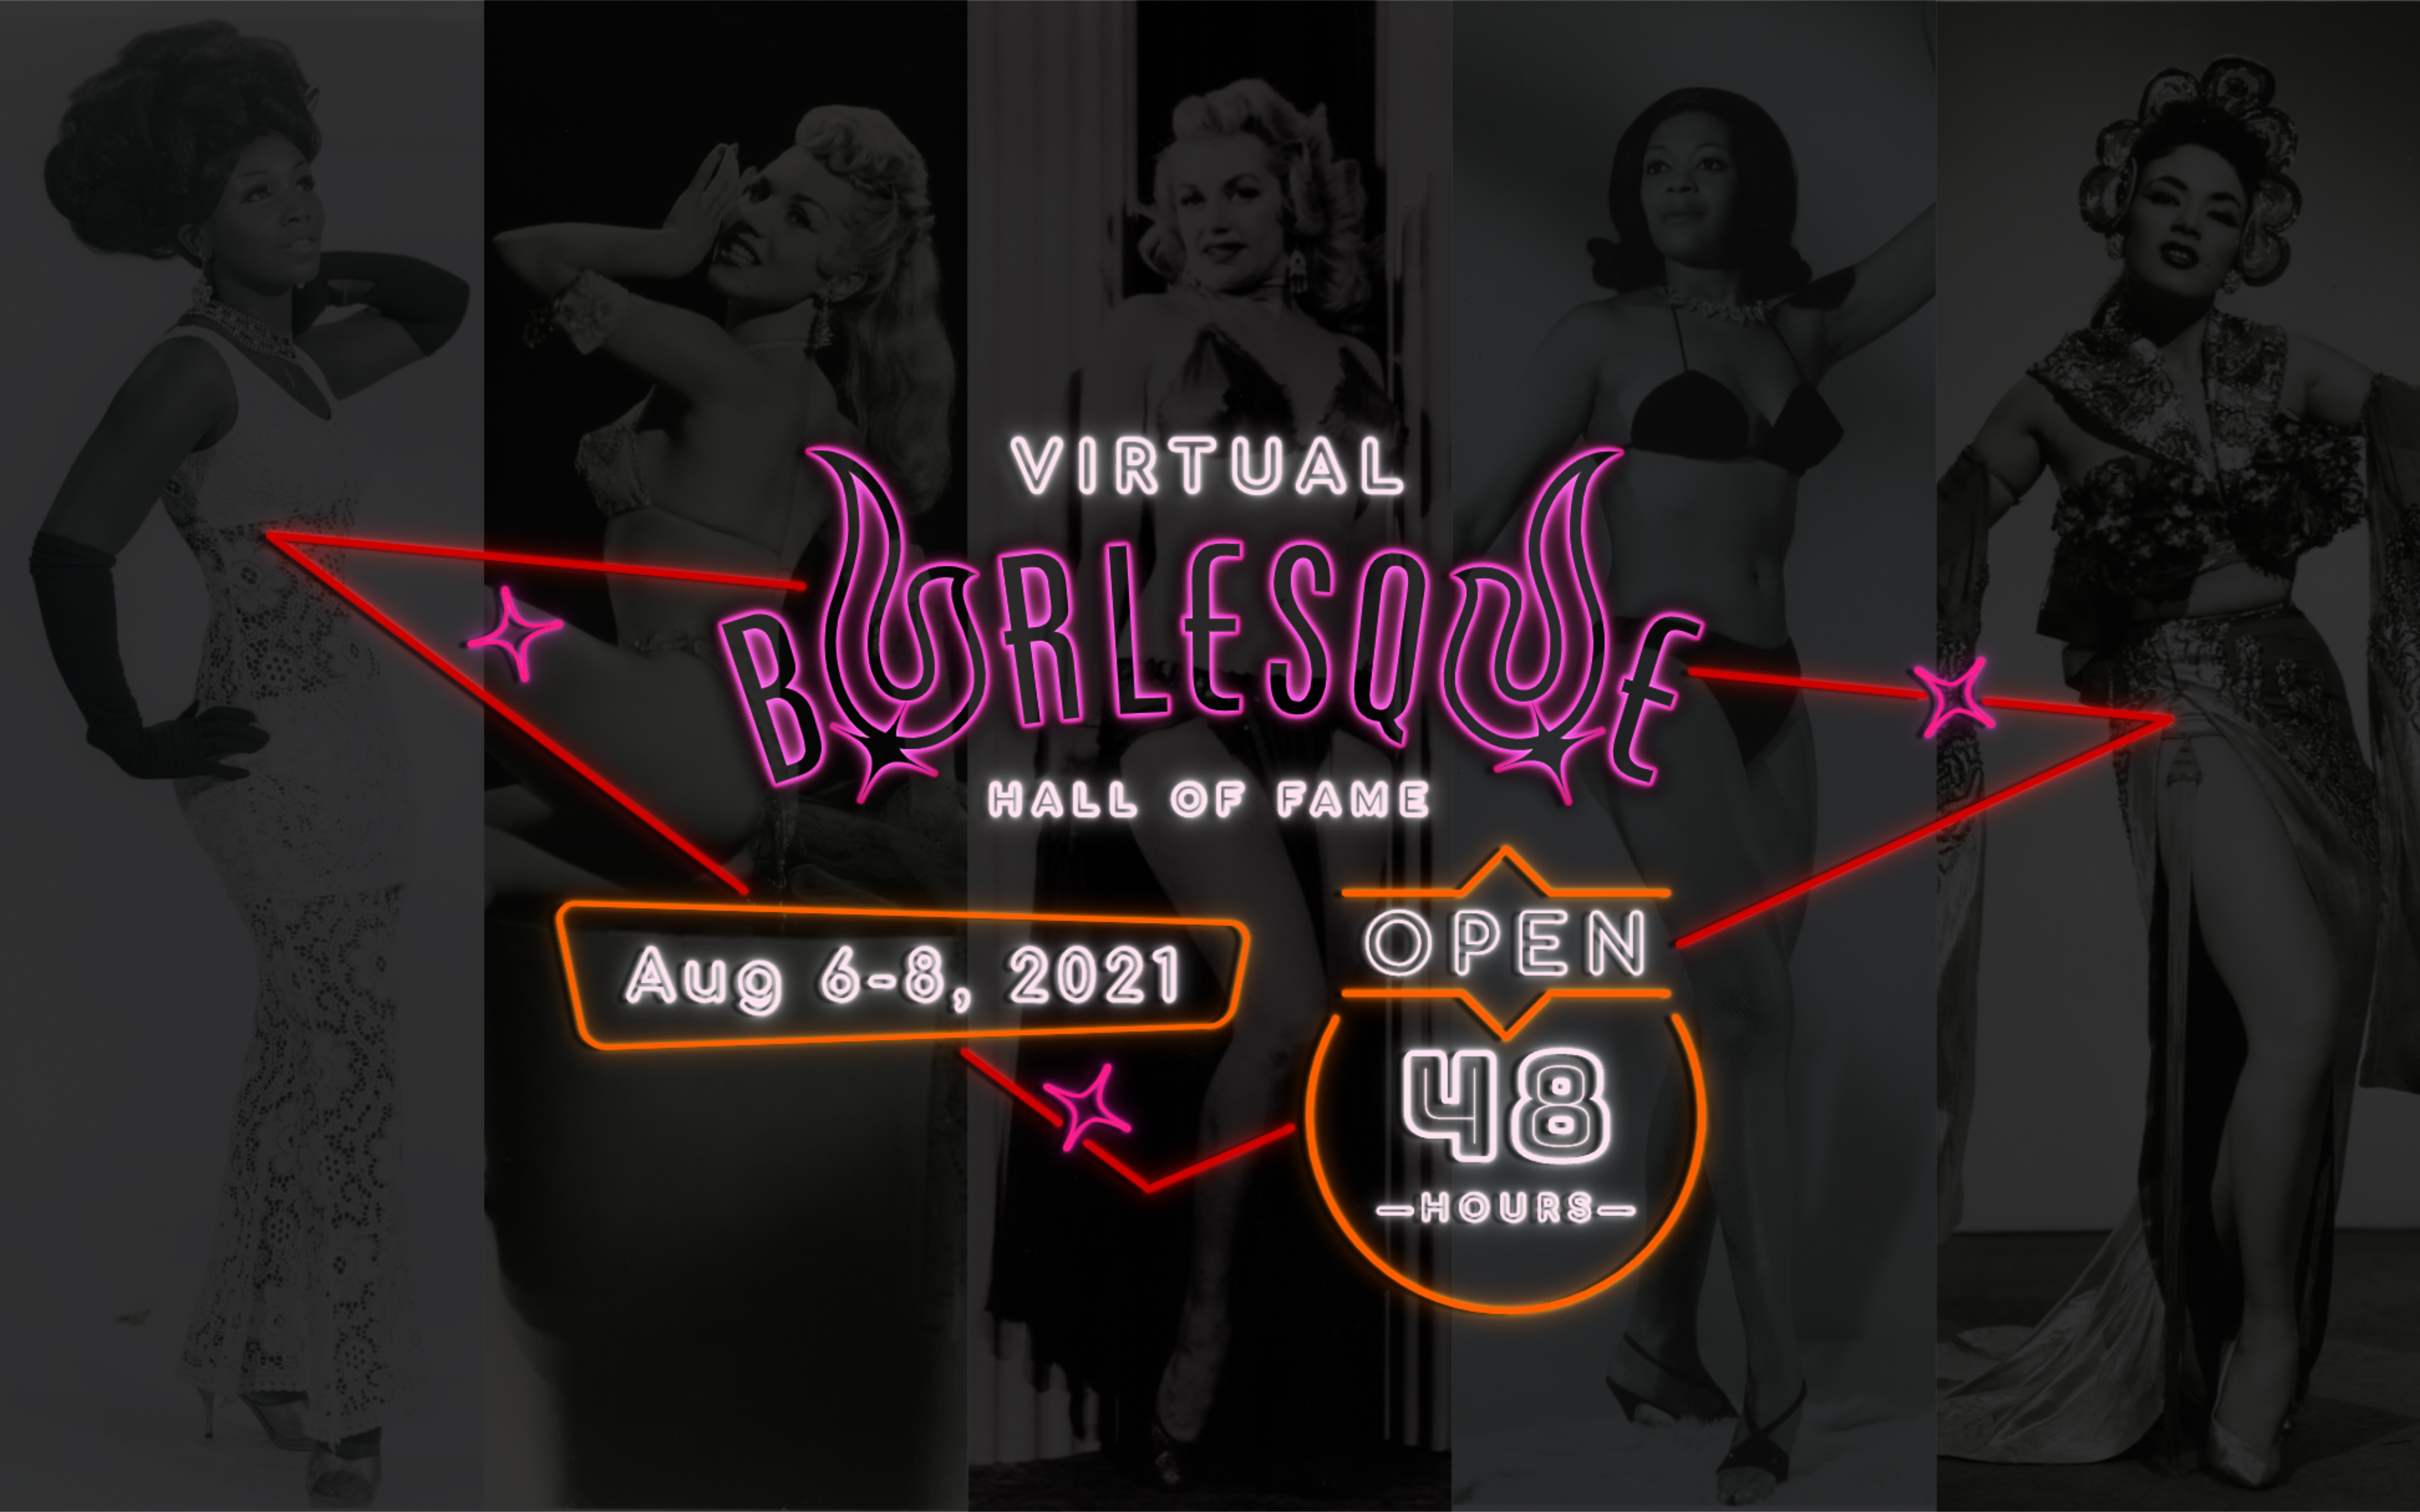 VHoF 2021 Banner - Las Vegas style neon logo with burlesque dancers in the background